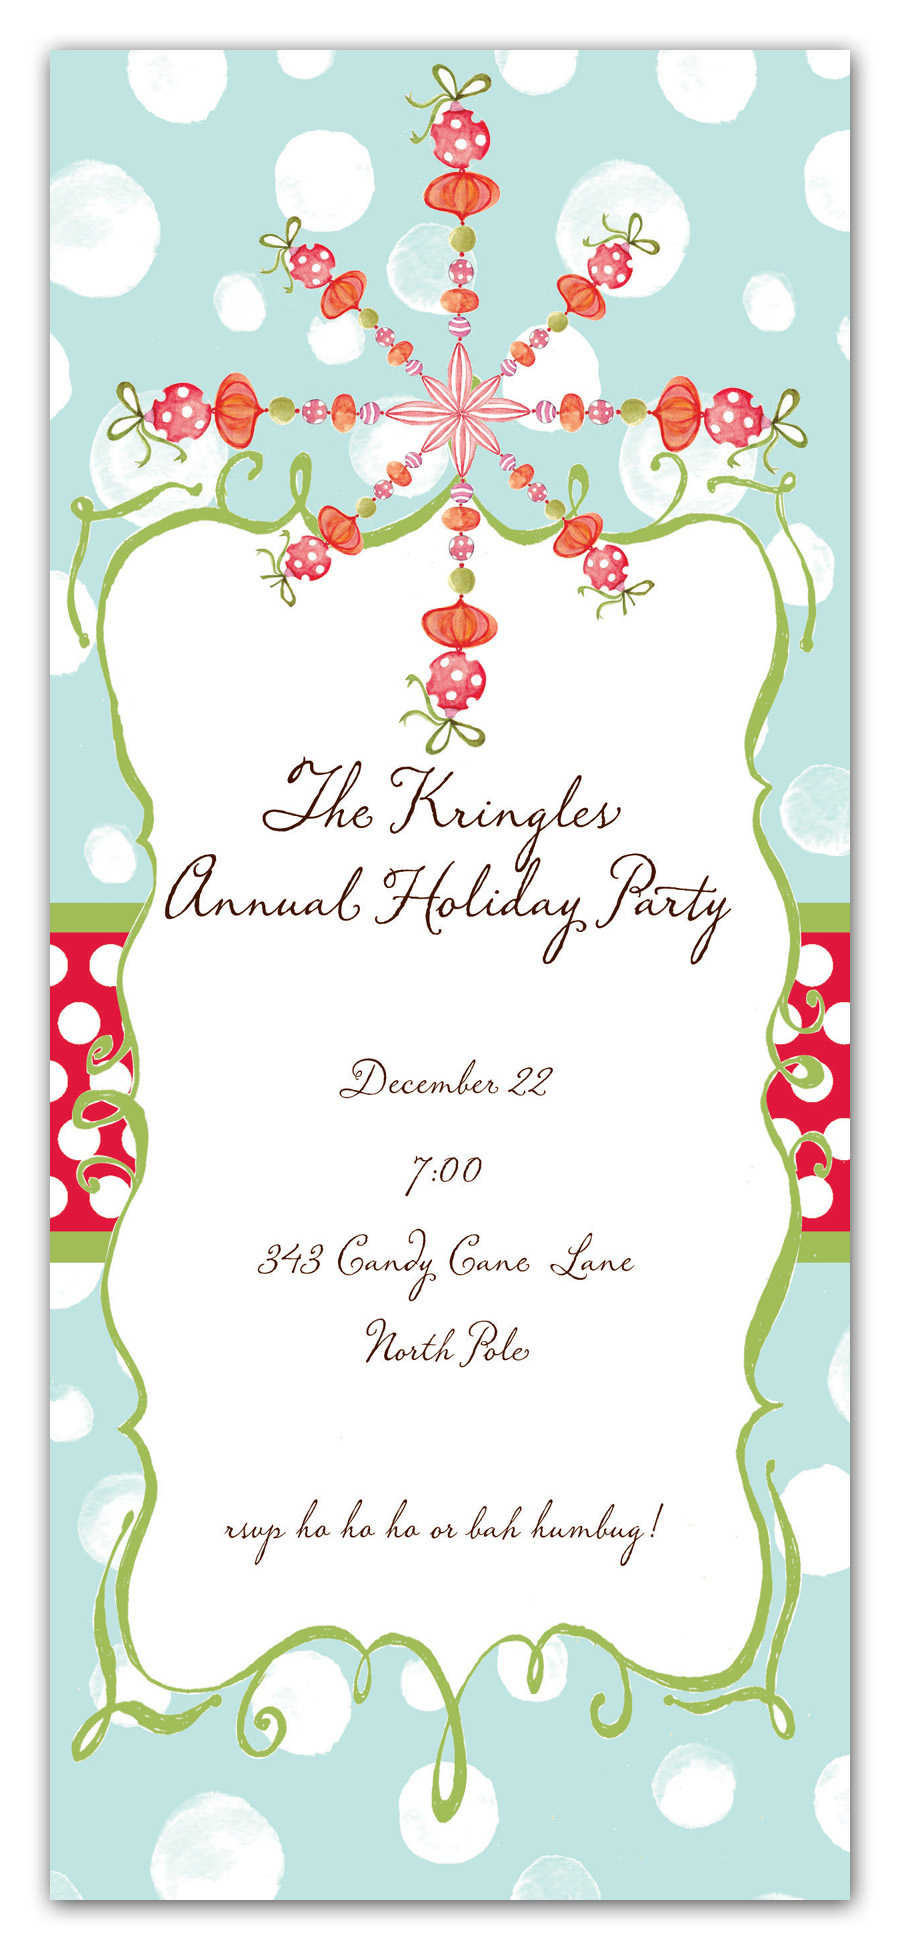 free christmas party invitation templates word - Etame.mibawa.co